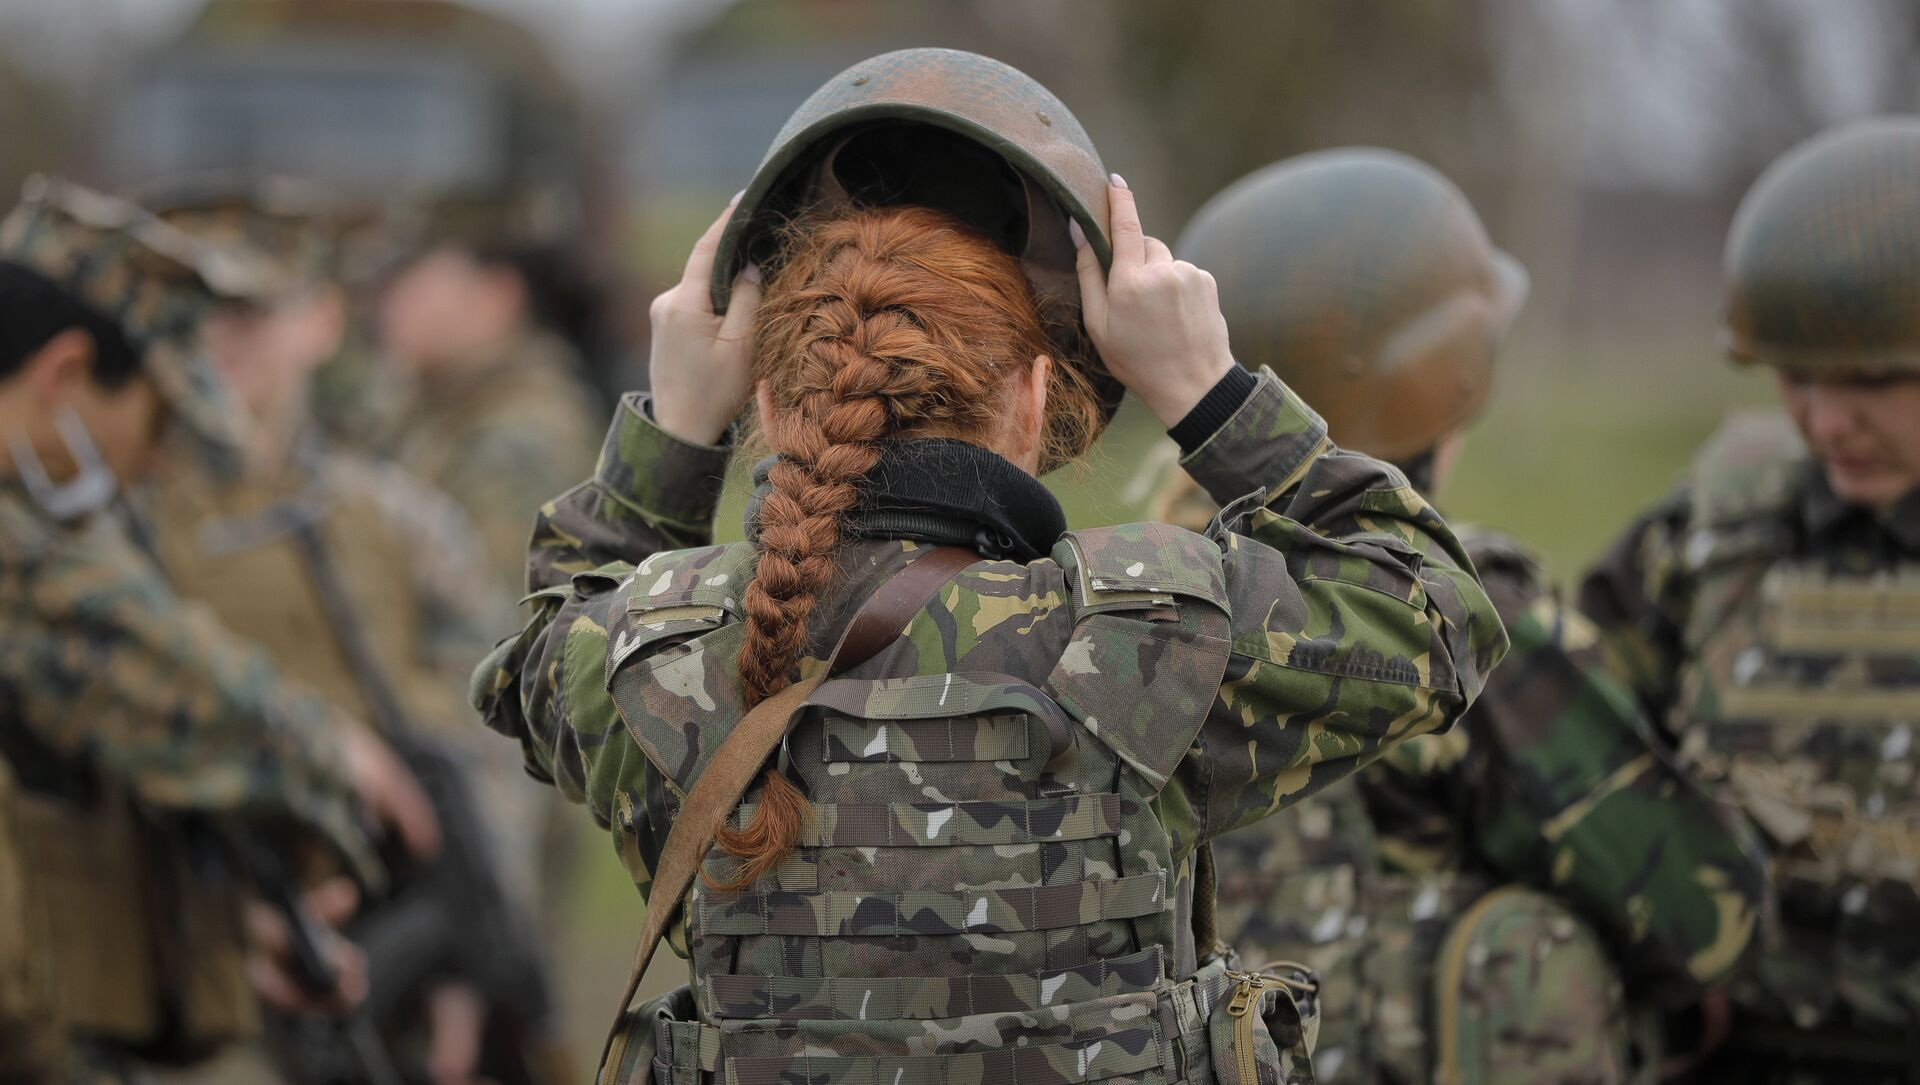 A Romanian female soldier adjusts her helmet before taking part in weapons training with US Marines female counterparts at the Capu Midia Surface to Air Firing Range, on the Black Sea coast in Romania, Monday, March 20, 2017 - Sputnik International, 1920, 25.07.2021